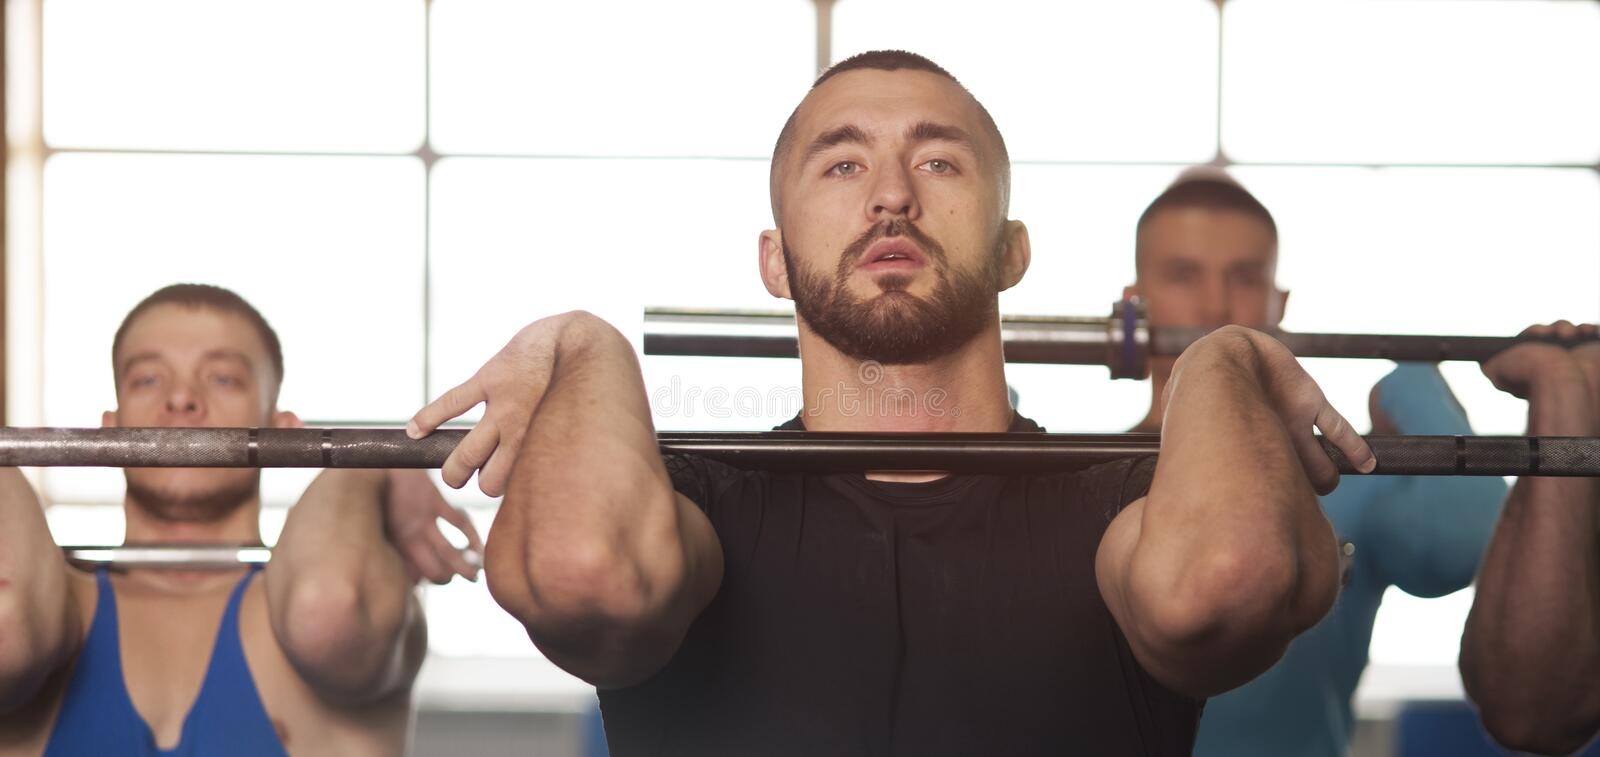 Young People in Gym Training With Barbells royalty free stock images